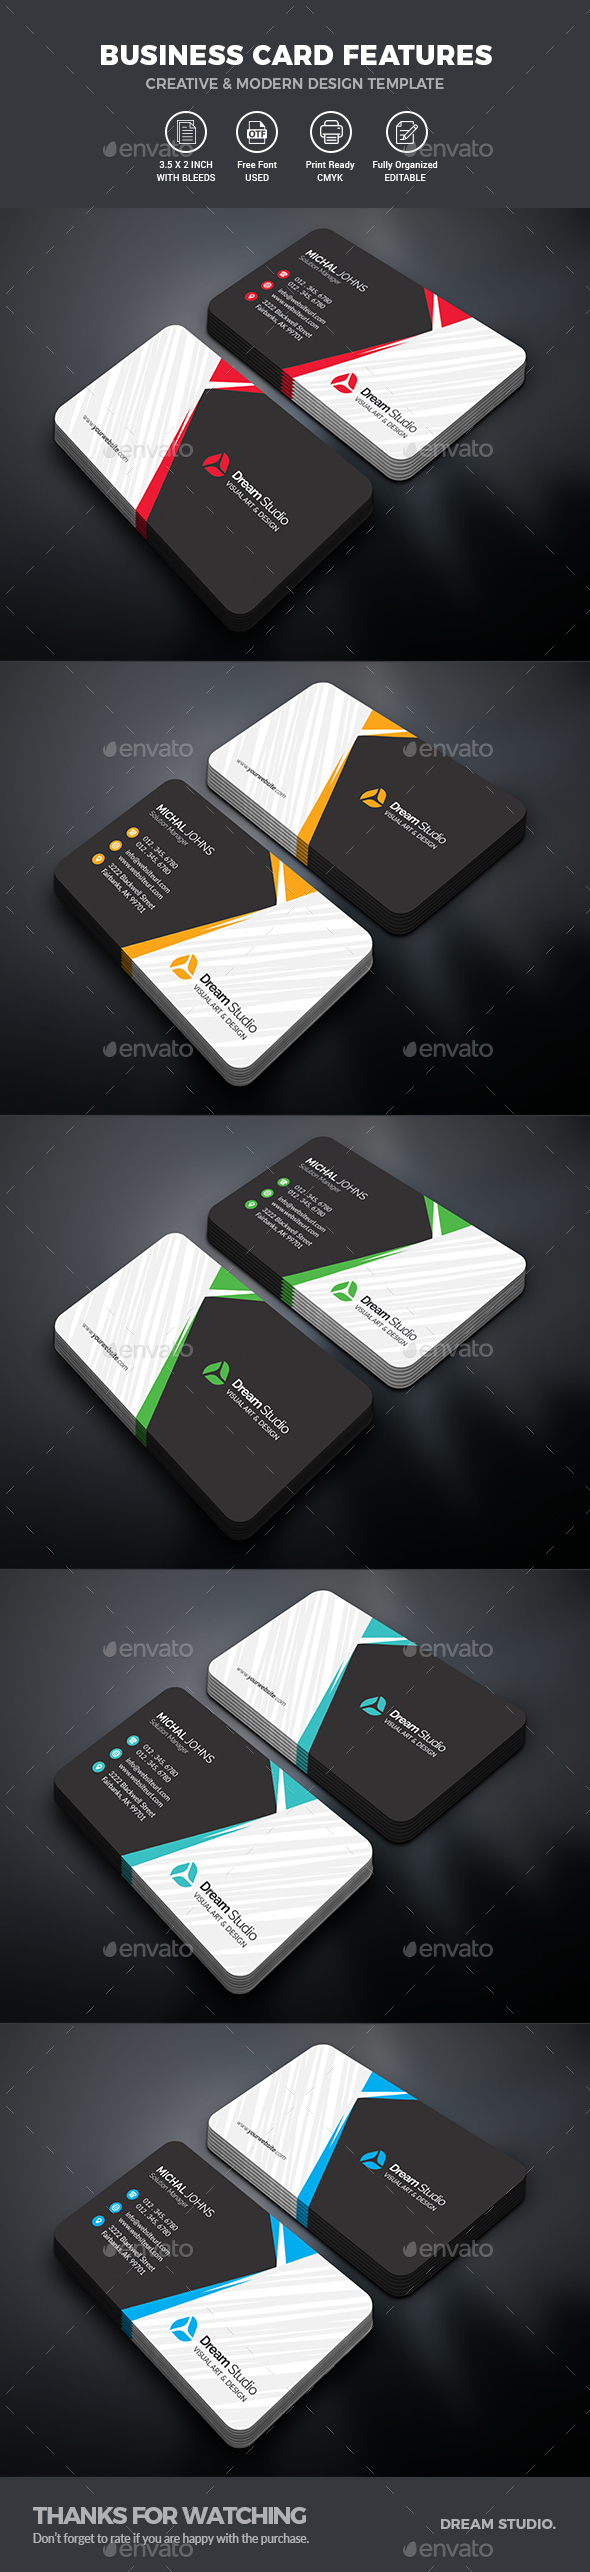 Design Business Cards Online Free Print Home   Business Card Templates  U0026 Designs From Graphicriver